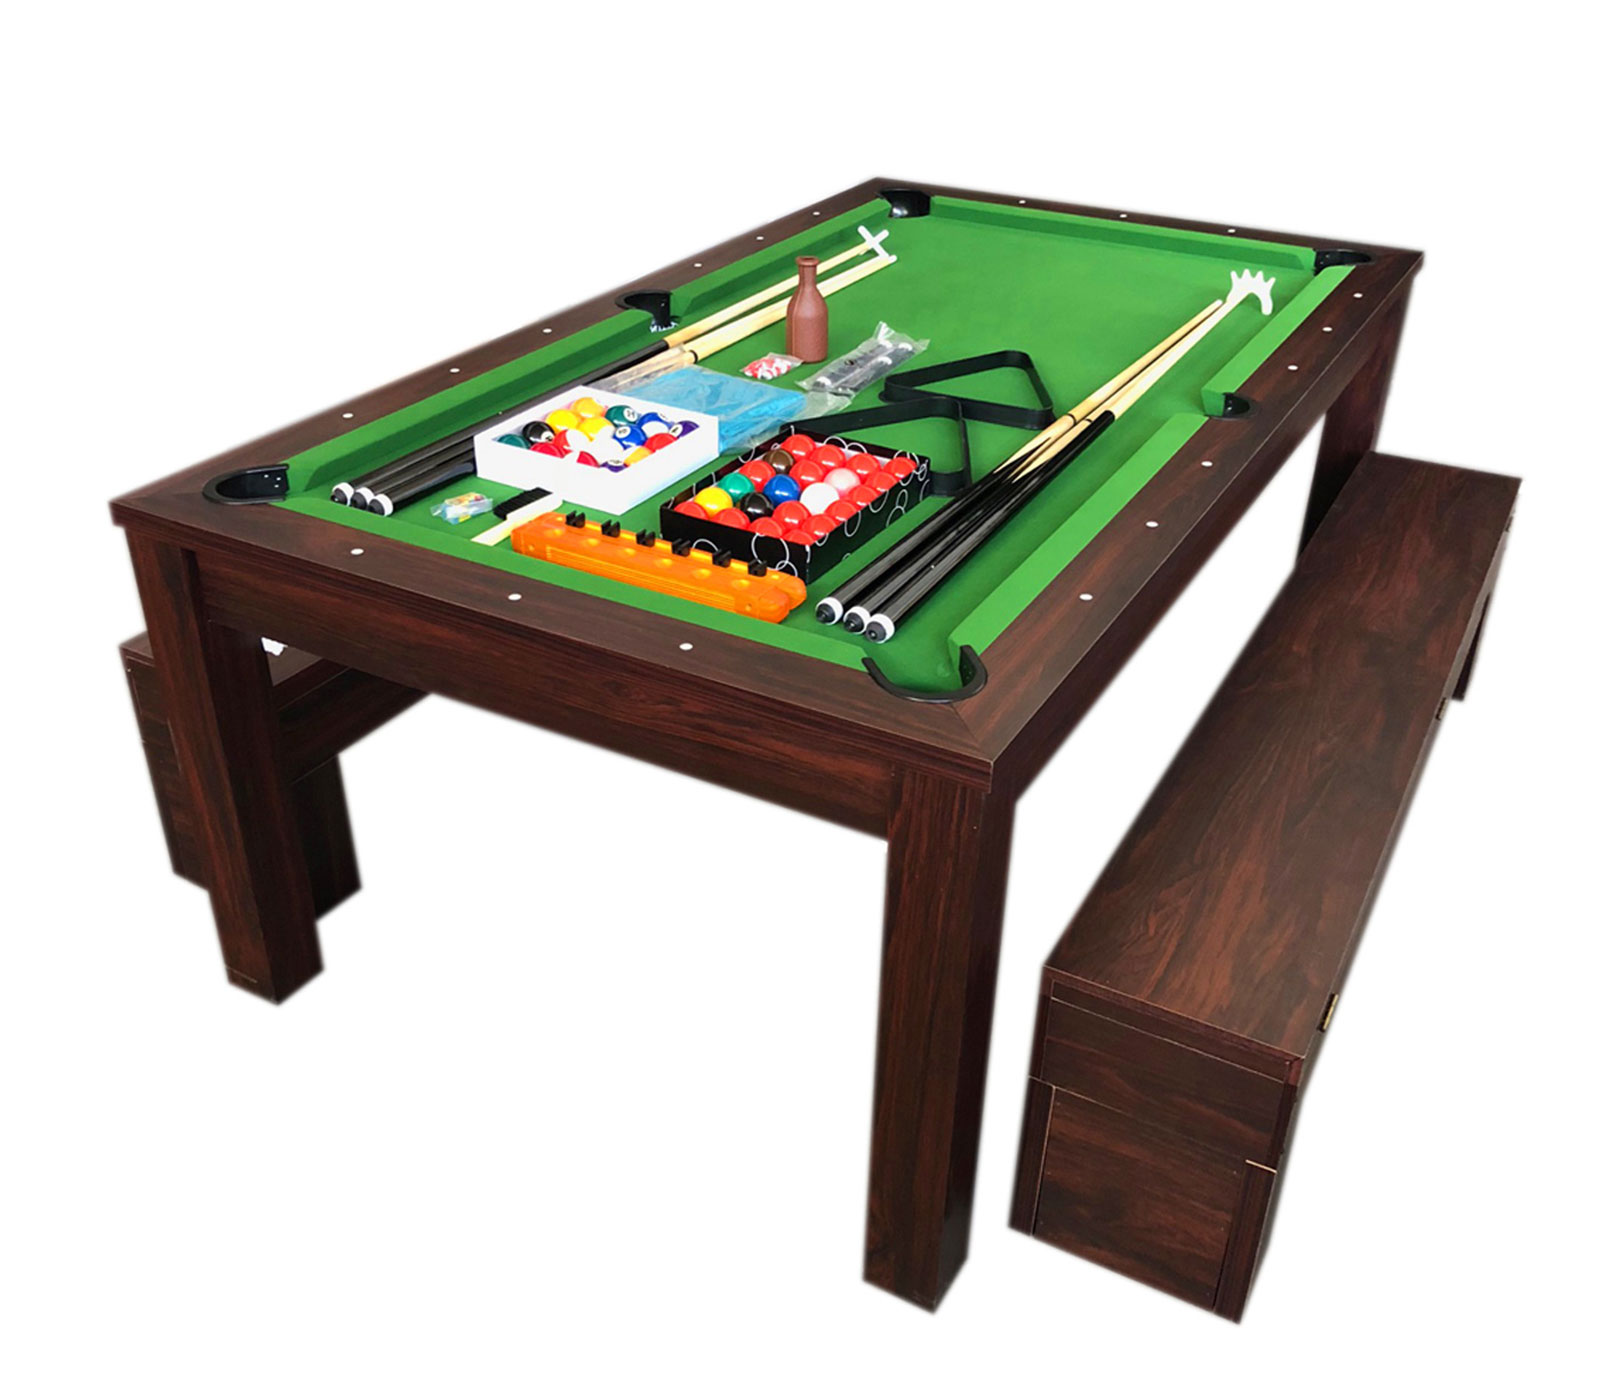 pool-table-Rich-green-1